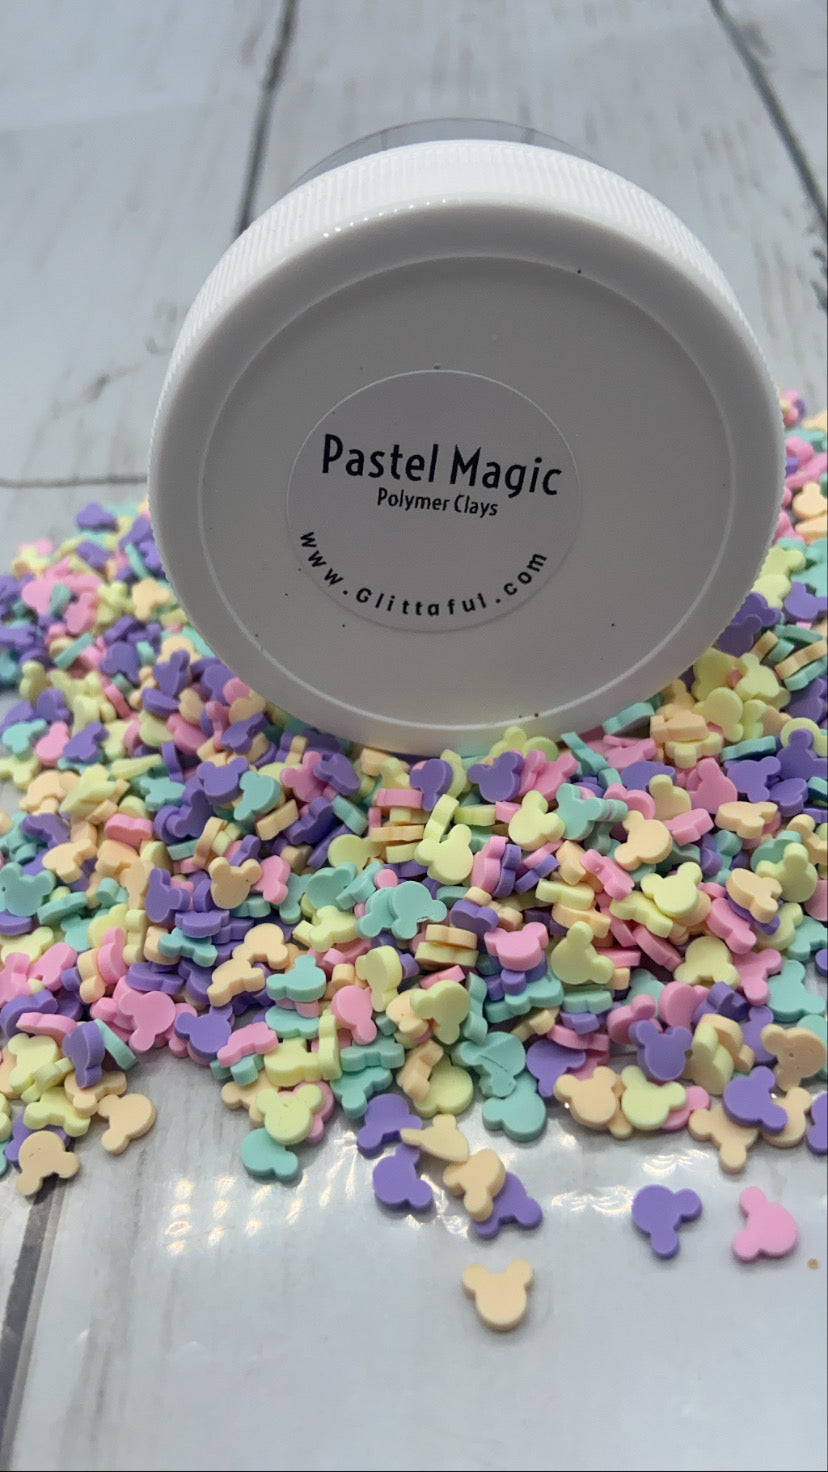 Pastel Magic - Polymer Clays